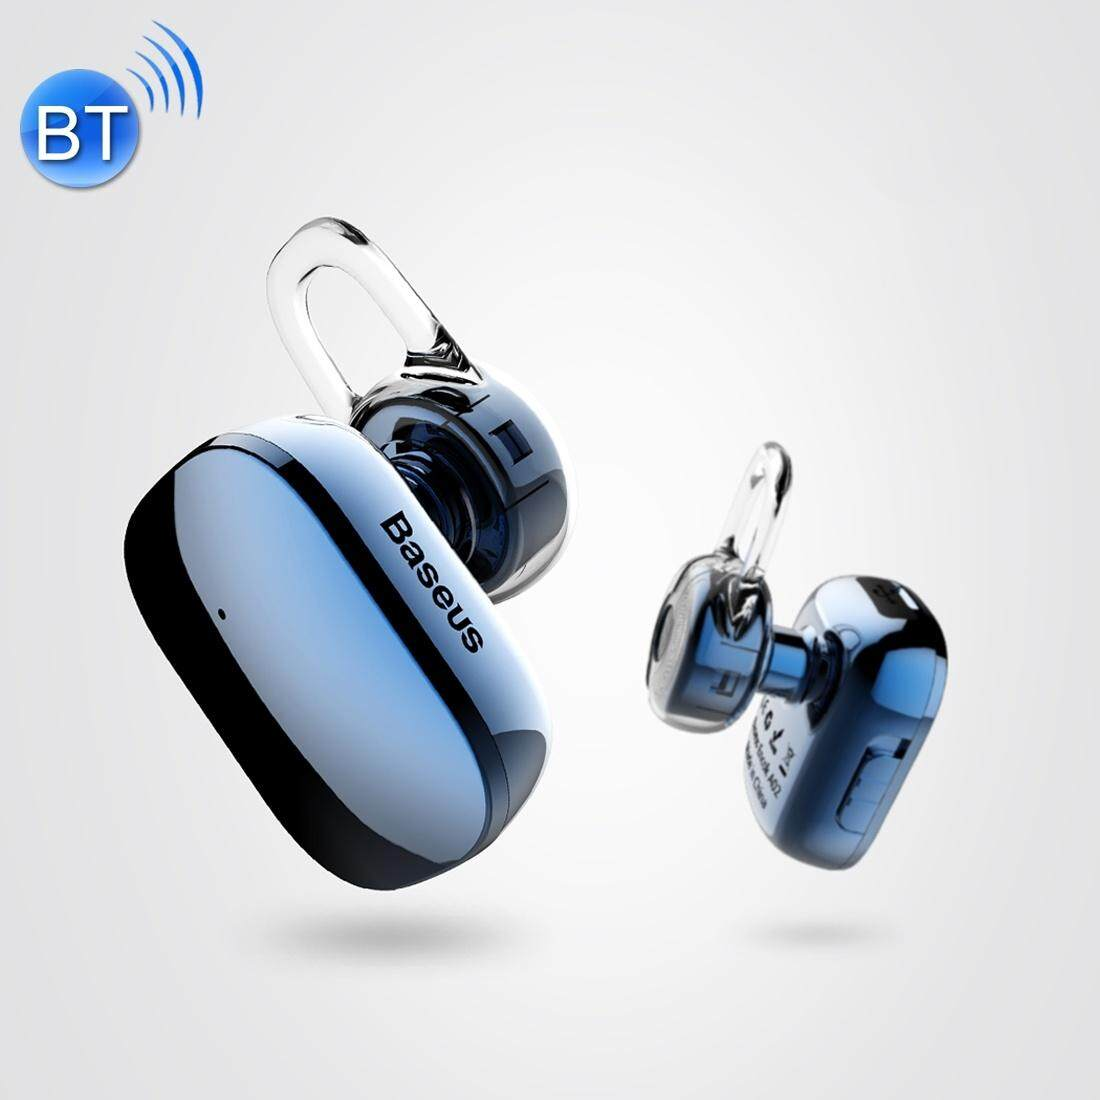 Baseus Encok A02 One-sided Touch Control Wireless Bluetooth In-Ear Plating Earphone, Support Answer / Hang Up Calls, For iPhone, Samsung, Huawei, Xiaomi, HTC, Sony and Other Smartphones(Blue)